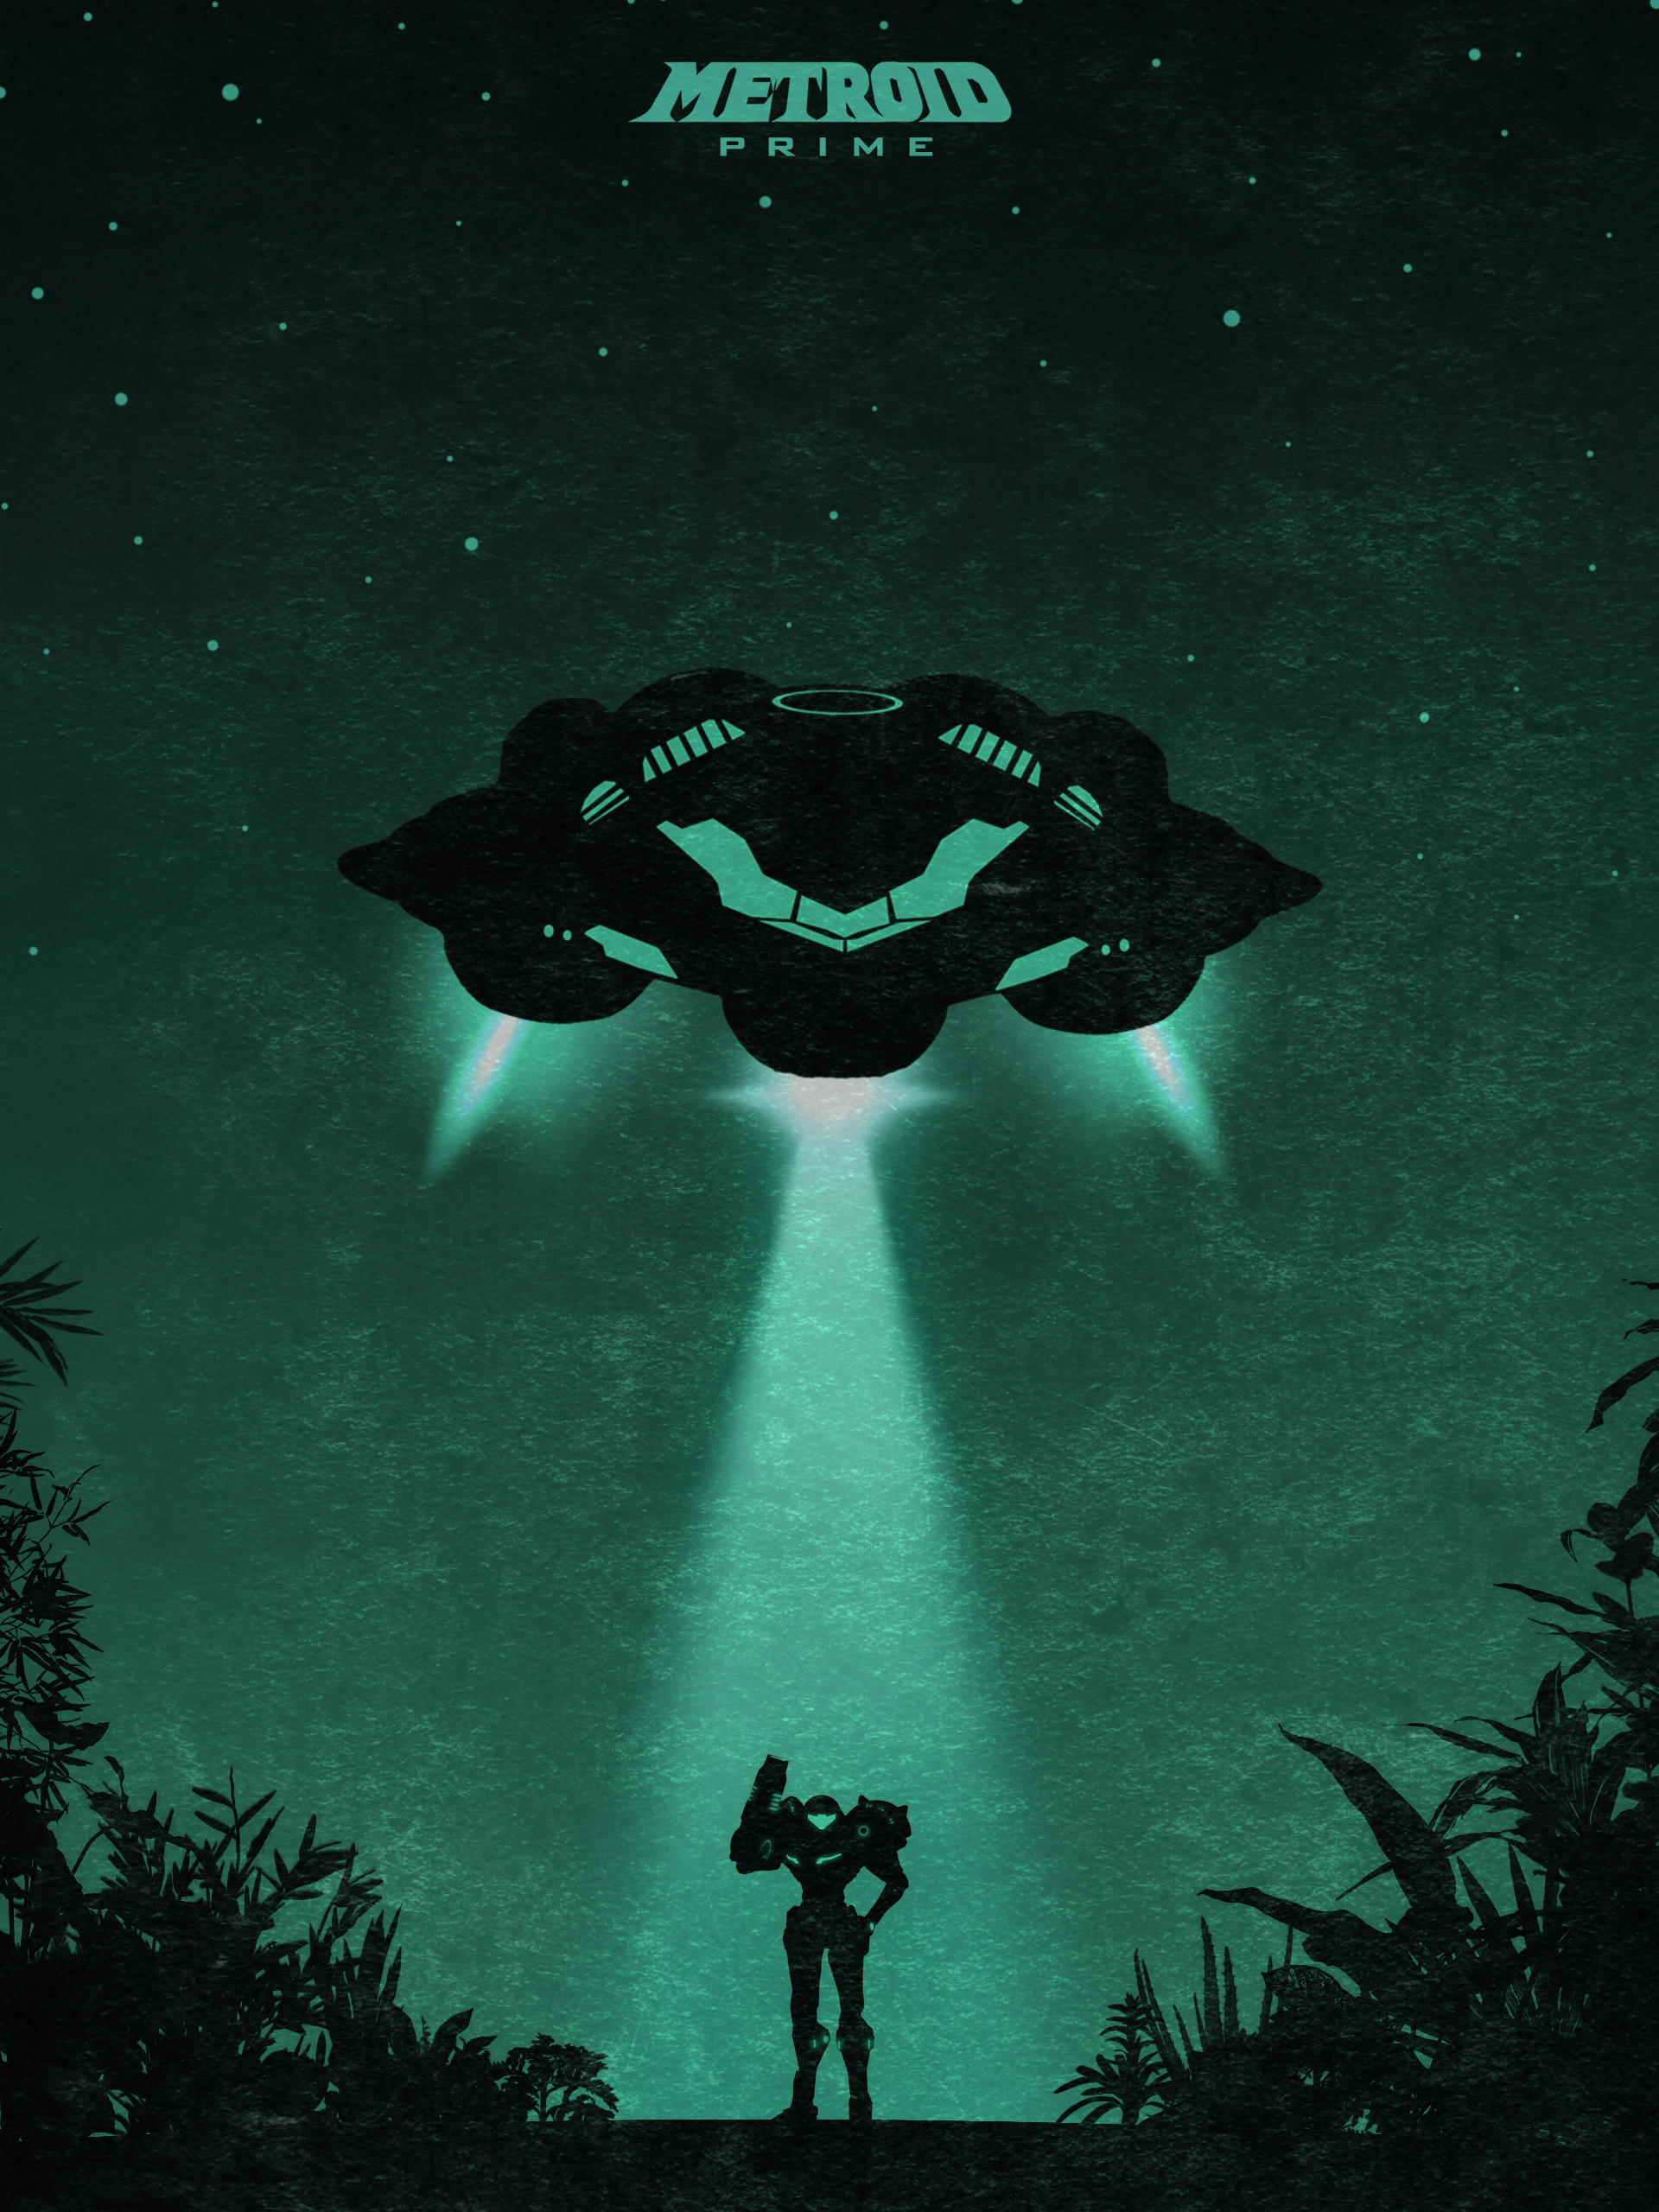 Fan-Created Metroid Prime Poster …